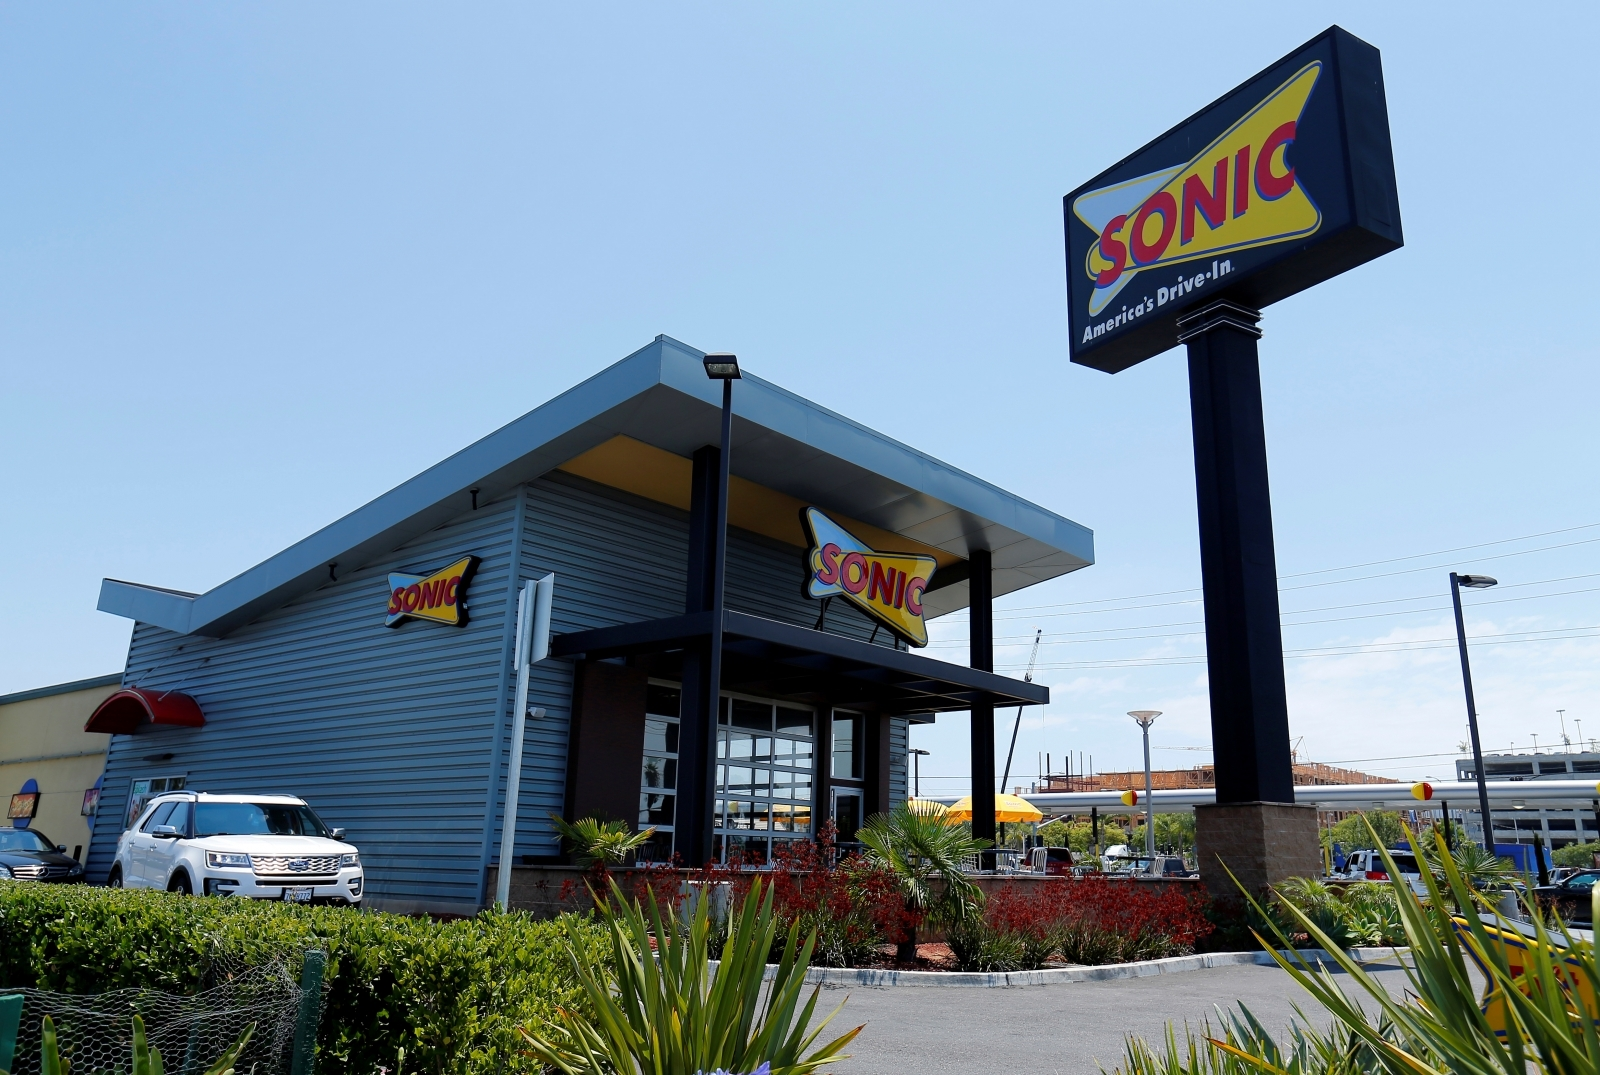 You can now buy the credit cards of Sonic customers for $25 on the dark web